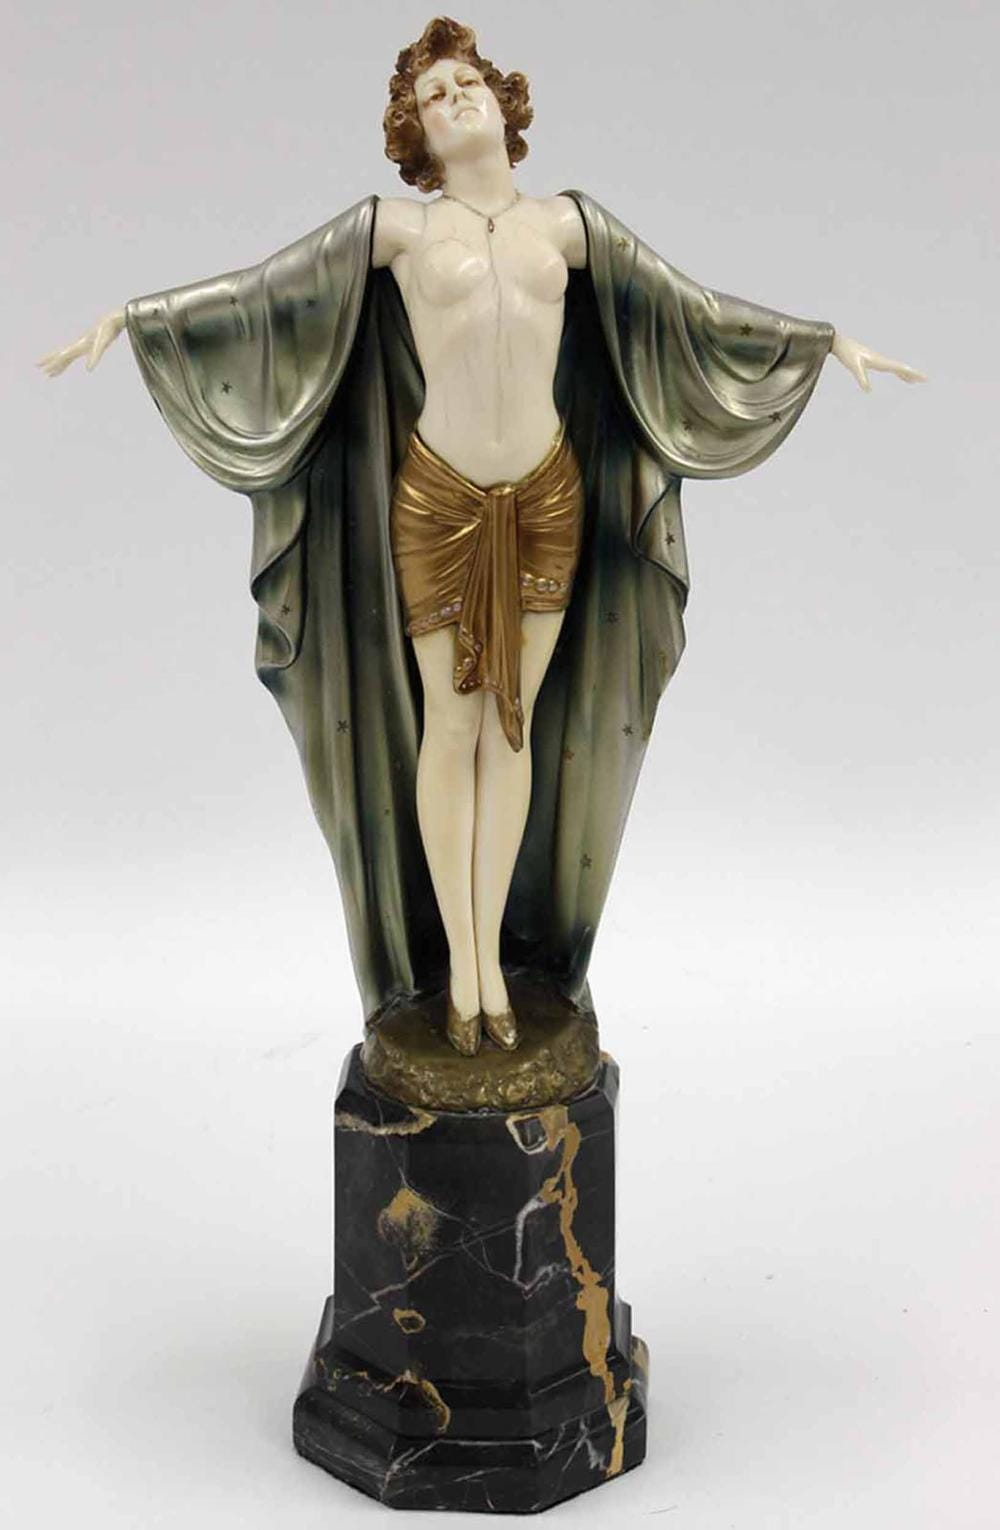 'Spring Awakening'<br> (also known as 'INVOCATION')<br>By Ferdinand Preiss (1882-1943) Circa 1920<br>A bronze and ivory female bare-breasted<br>dancer wearing a gold coloured tunic, with<br>a cloak draped over her arms, hanging in<br>deep folds to the ground.  She is wearing<br>a pair of low-healed shoes, and stands on<br>a rough bronze circular base, which tops an<br>eight-sided portoro marble base. Her hands,<br>torso, head and legs are in ivory.<br>The cloak is patinated in a pale<br>blue over a silver ground.<br>Height: 35.6 cms<br>Signatures:  Engraved 'F Preiss' <br>on the bronze base.<br>Reference: (i) Bryan Catley, Art Deco<br>and Other Figures, Antique Collectors' Club,<br>London, 1978, pictured p. 252.<br>(ii) Alberto Shayo, Ferdinand Preiss,<br>Art Deco Sculptor, The fire <br>and the flame, Antique Collectors' Club, 2005<br>pictured p. 179. <br>(iii) Victor Arwas, Art Deco<br>Sculpture, London, 1992,<br>pictured p. 184 and 185.